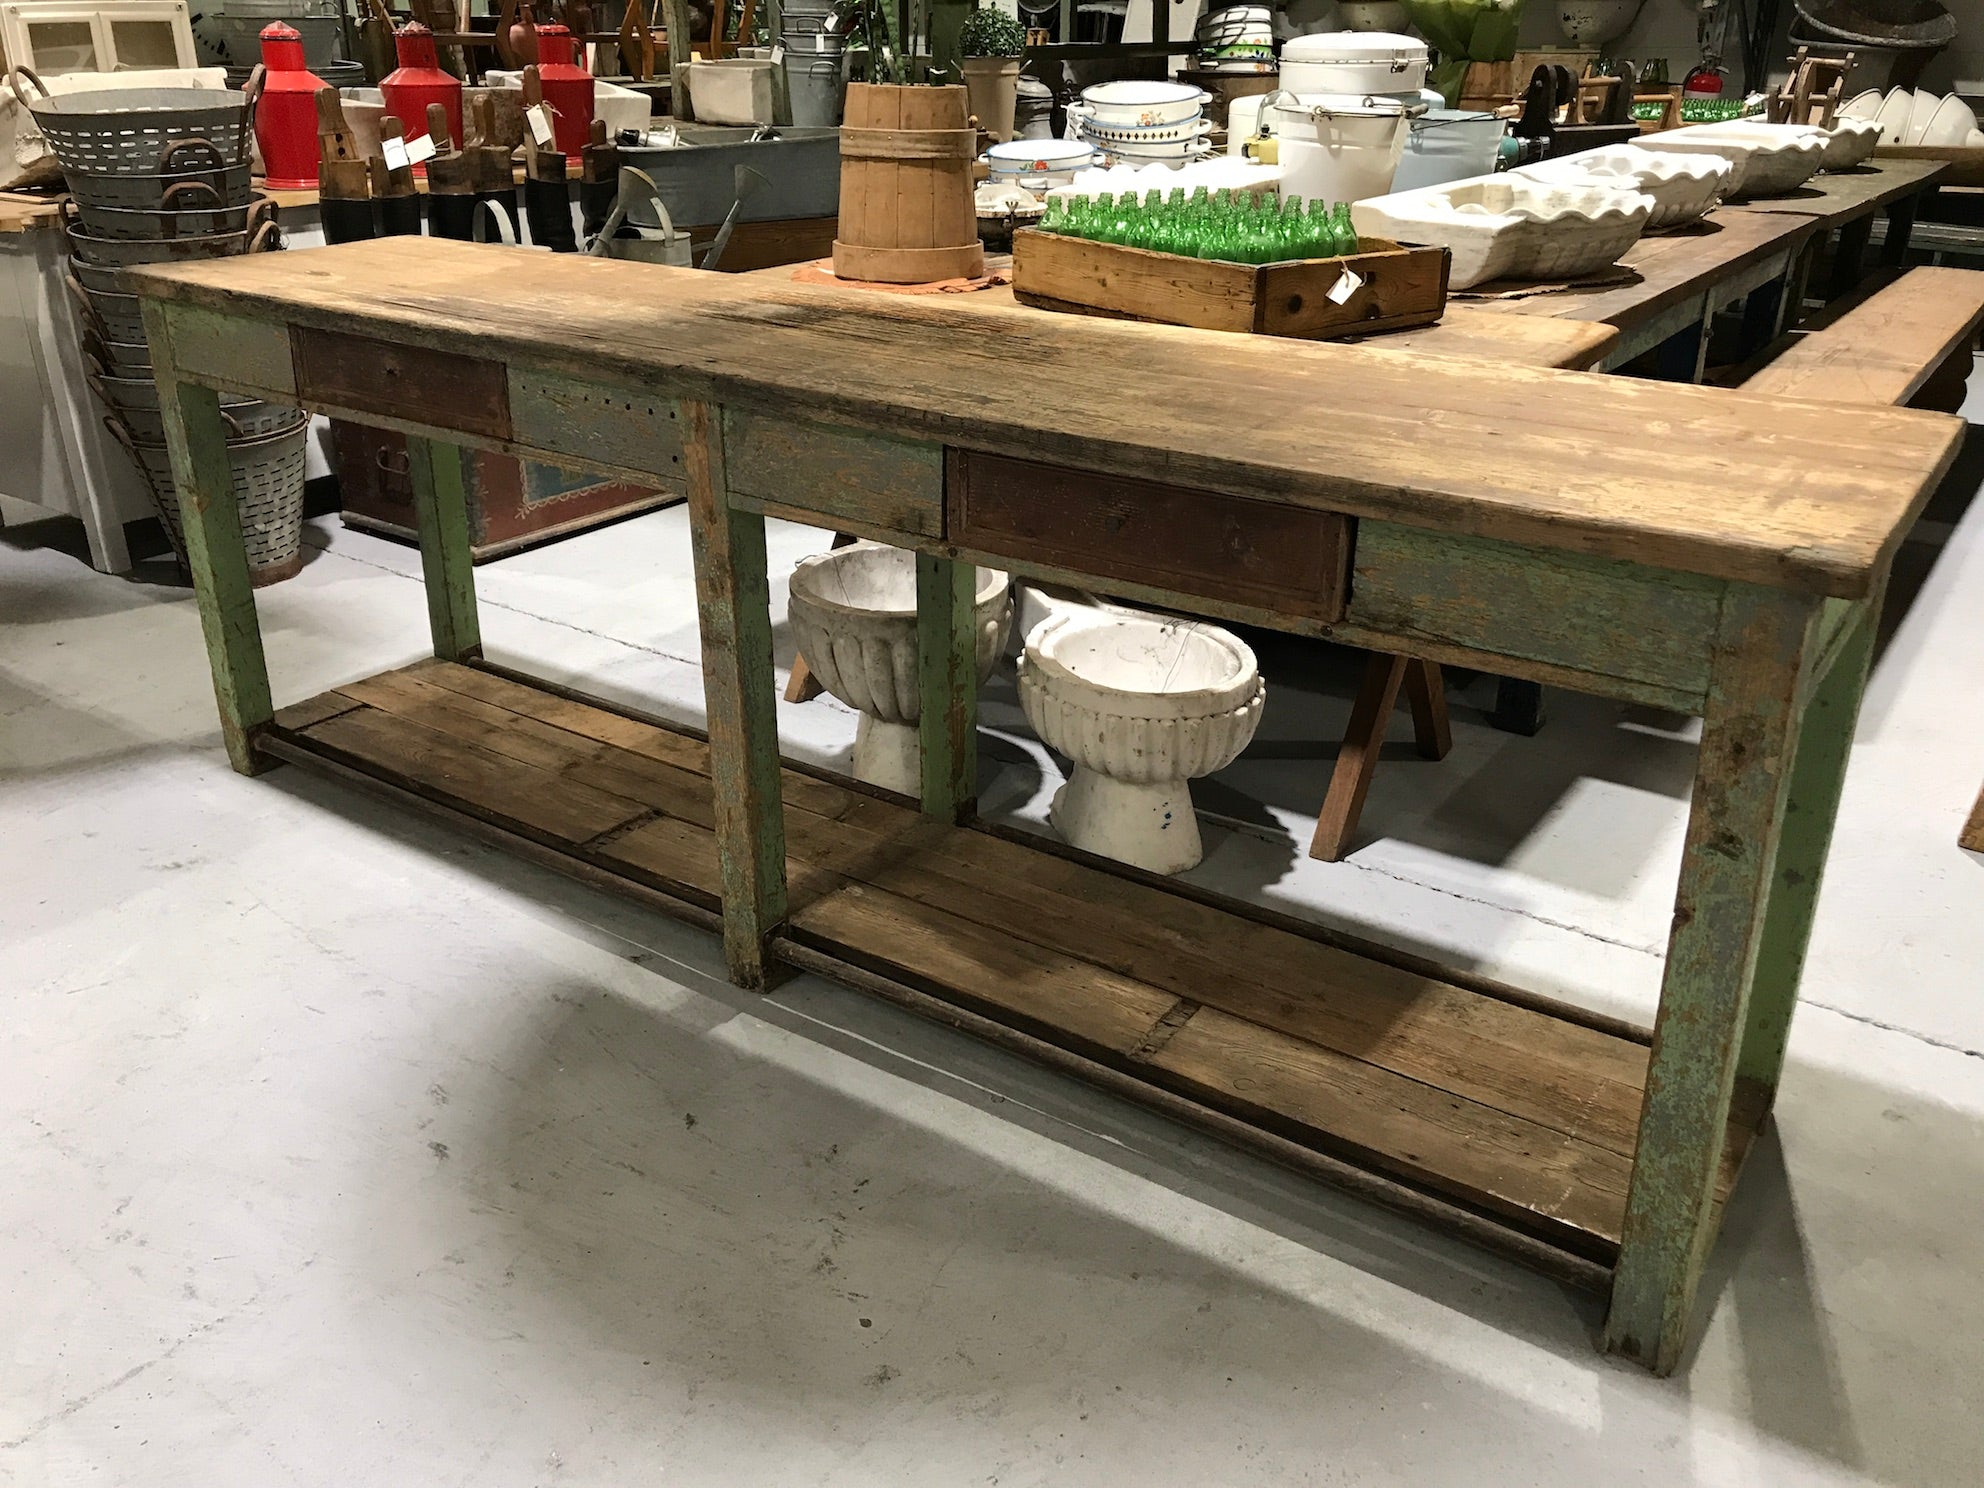 Vintage industrial European kitchen island workbench 2.6mt #2247 Byron Warehouse On Hold